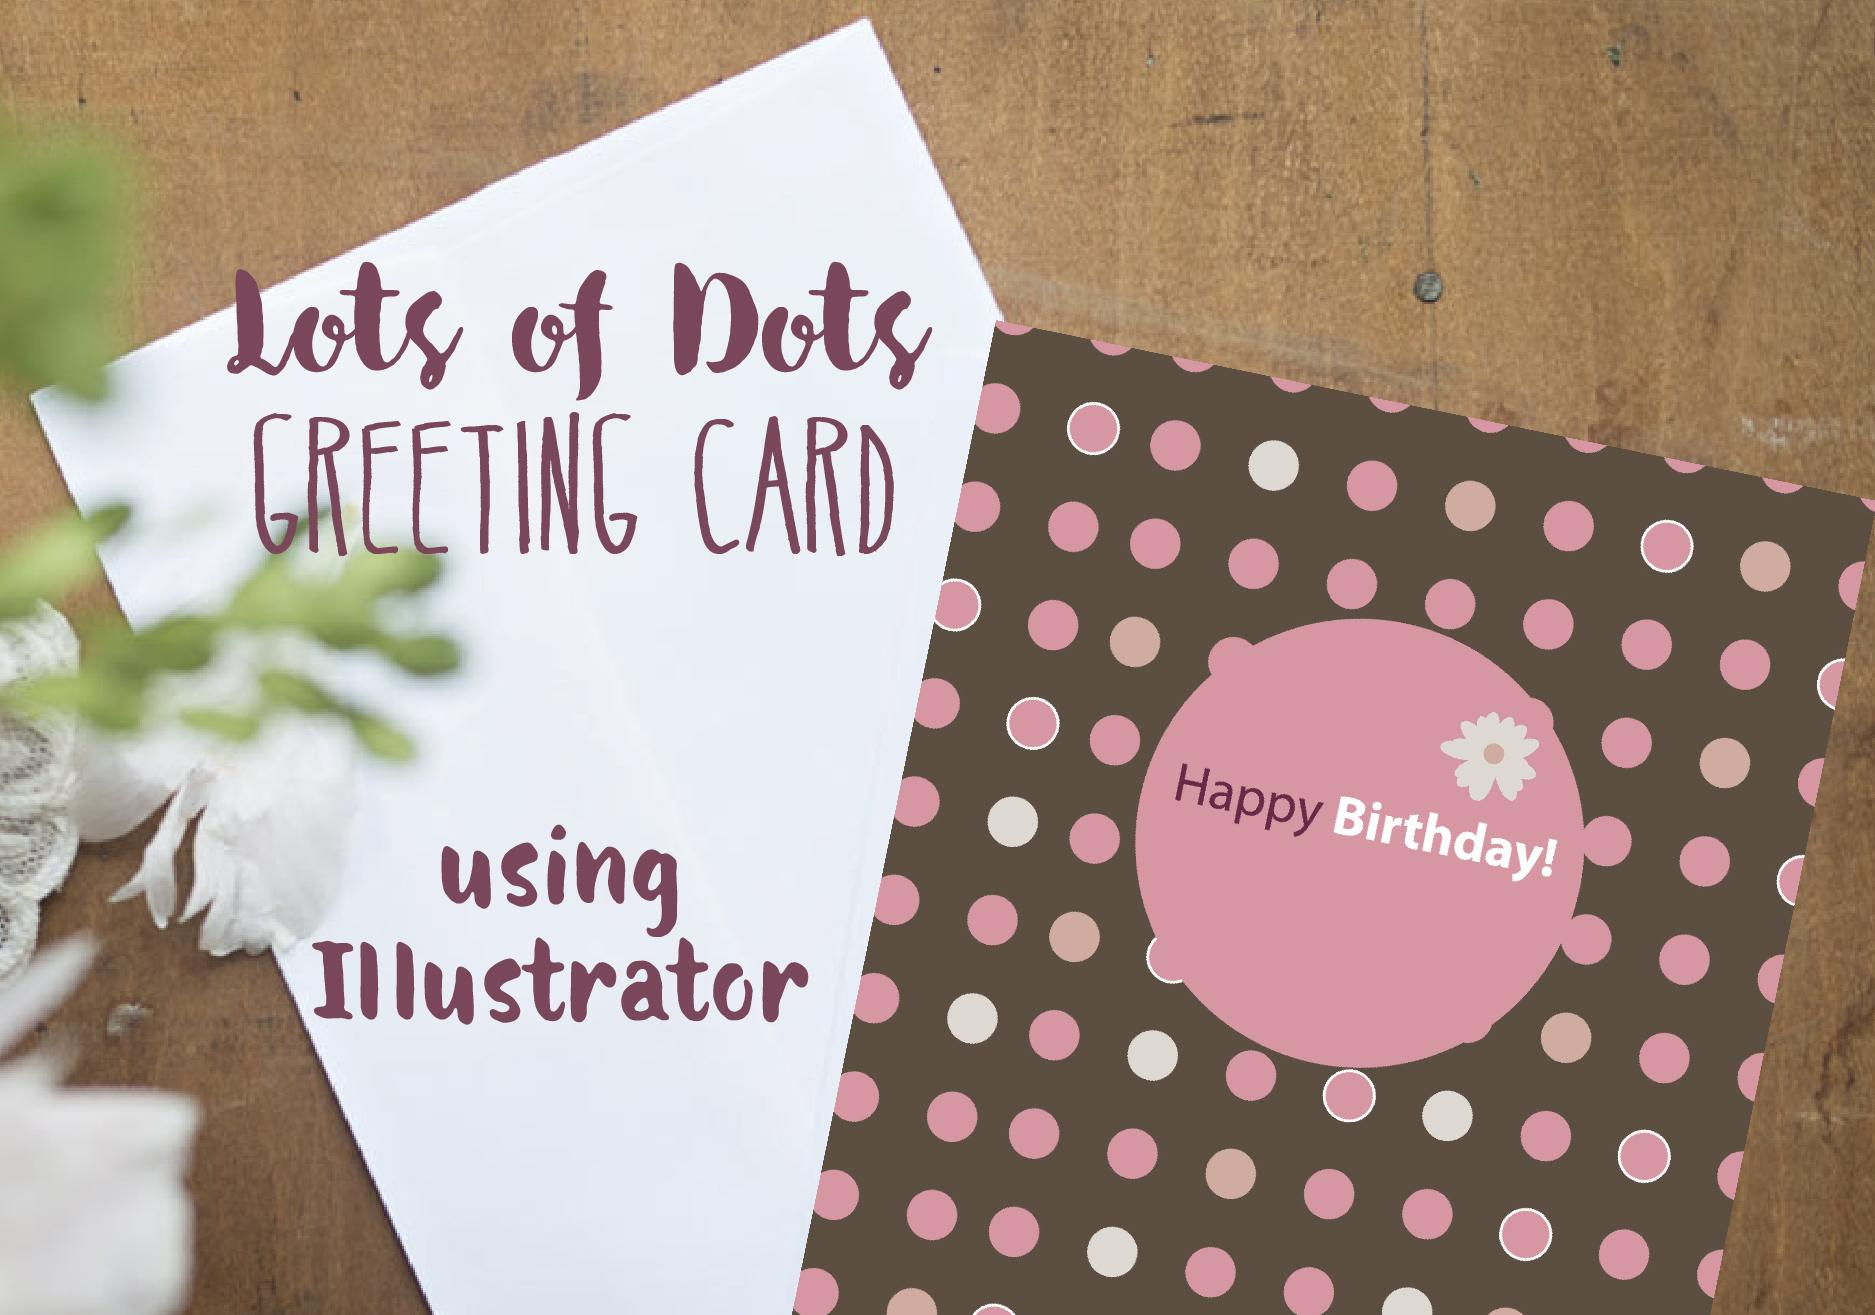 Create an interesting lots of dots birthday card in illustrator for class projects 4 see all create a greeting card m4hsunfo